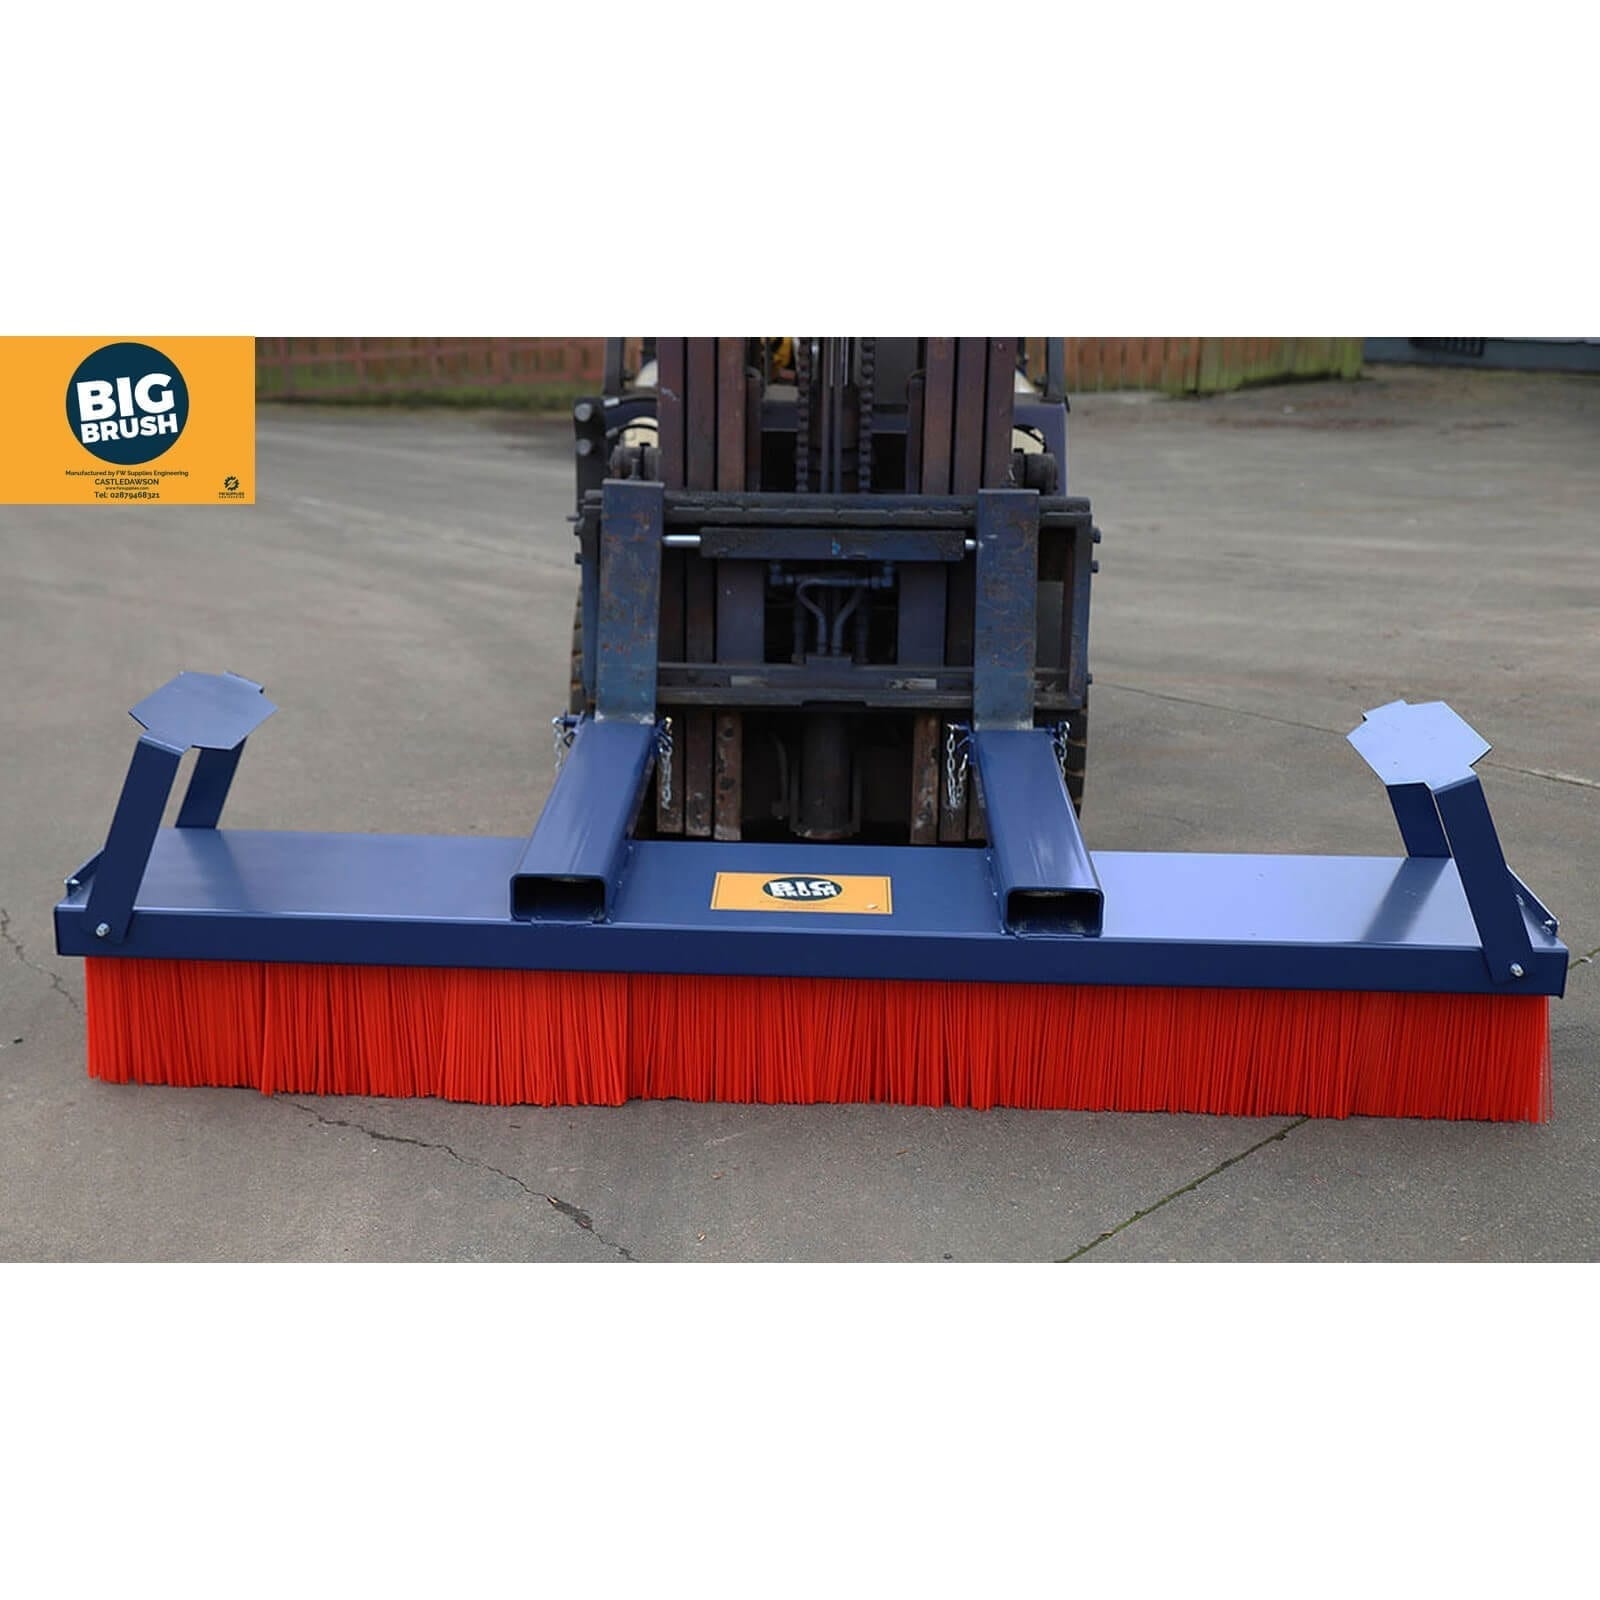 BB-Forklift-Brush-2400mm-8-row